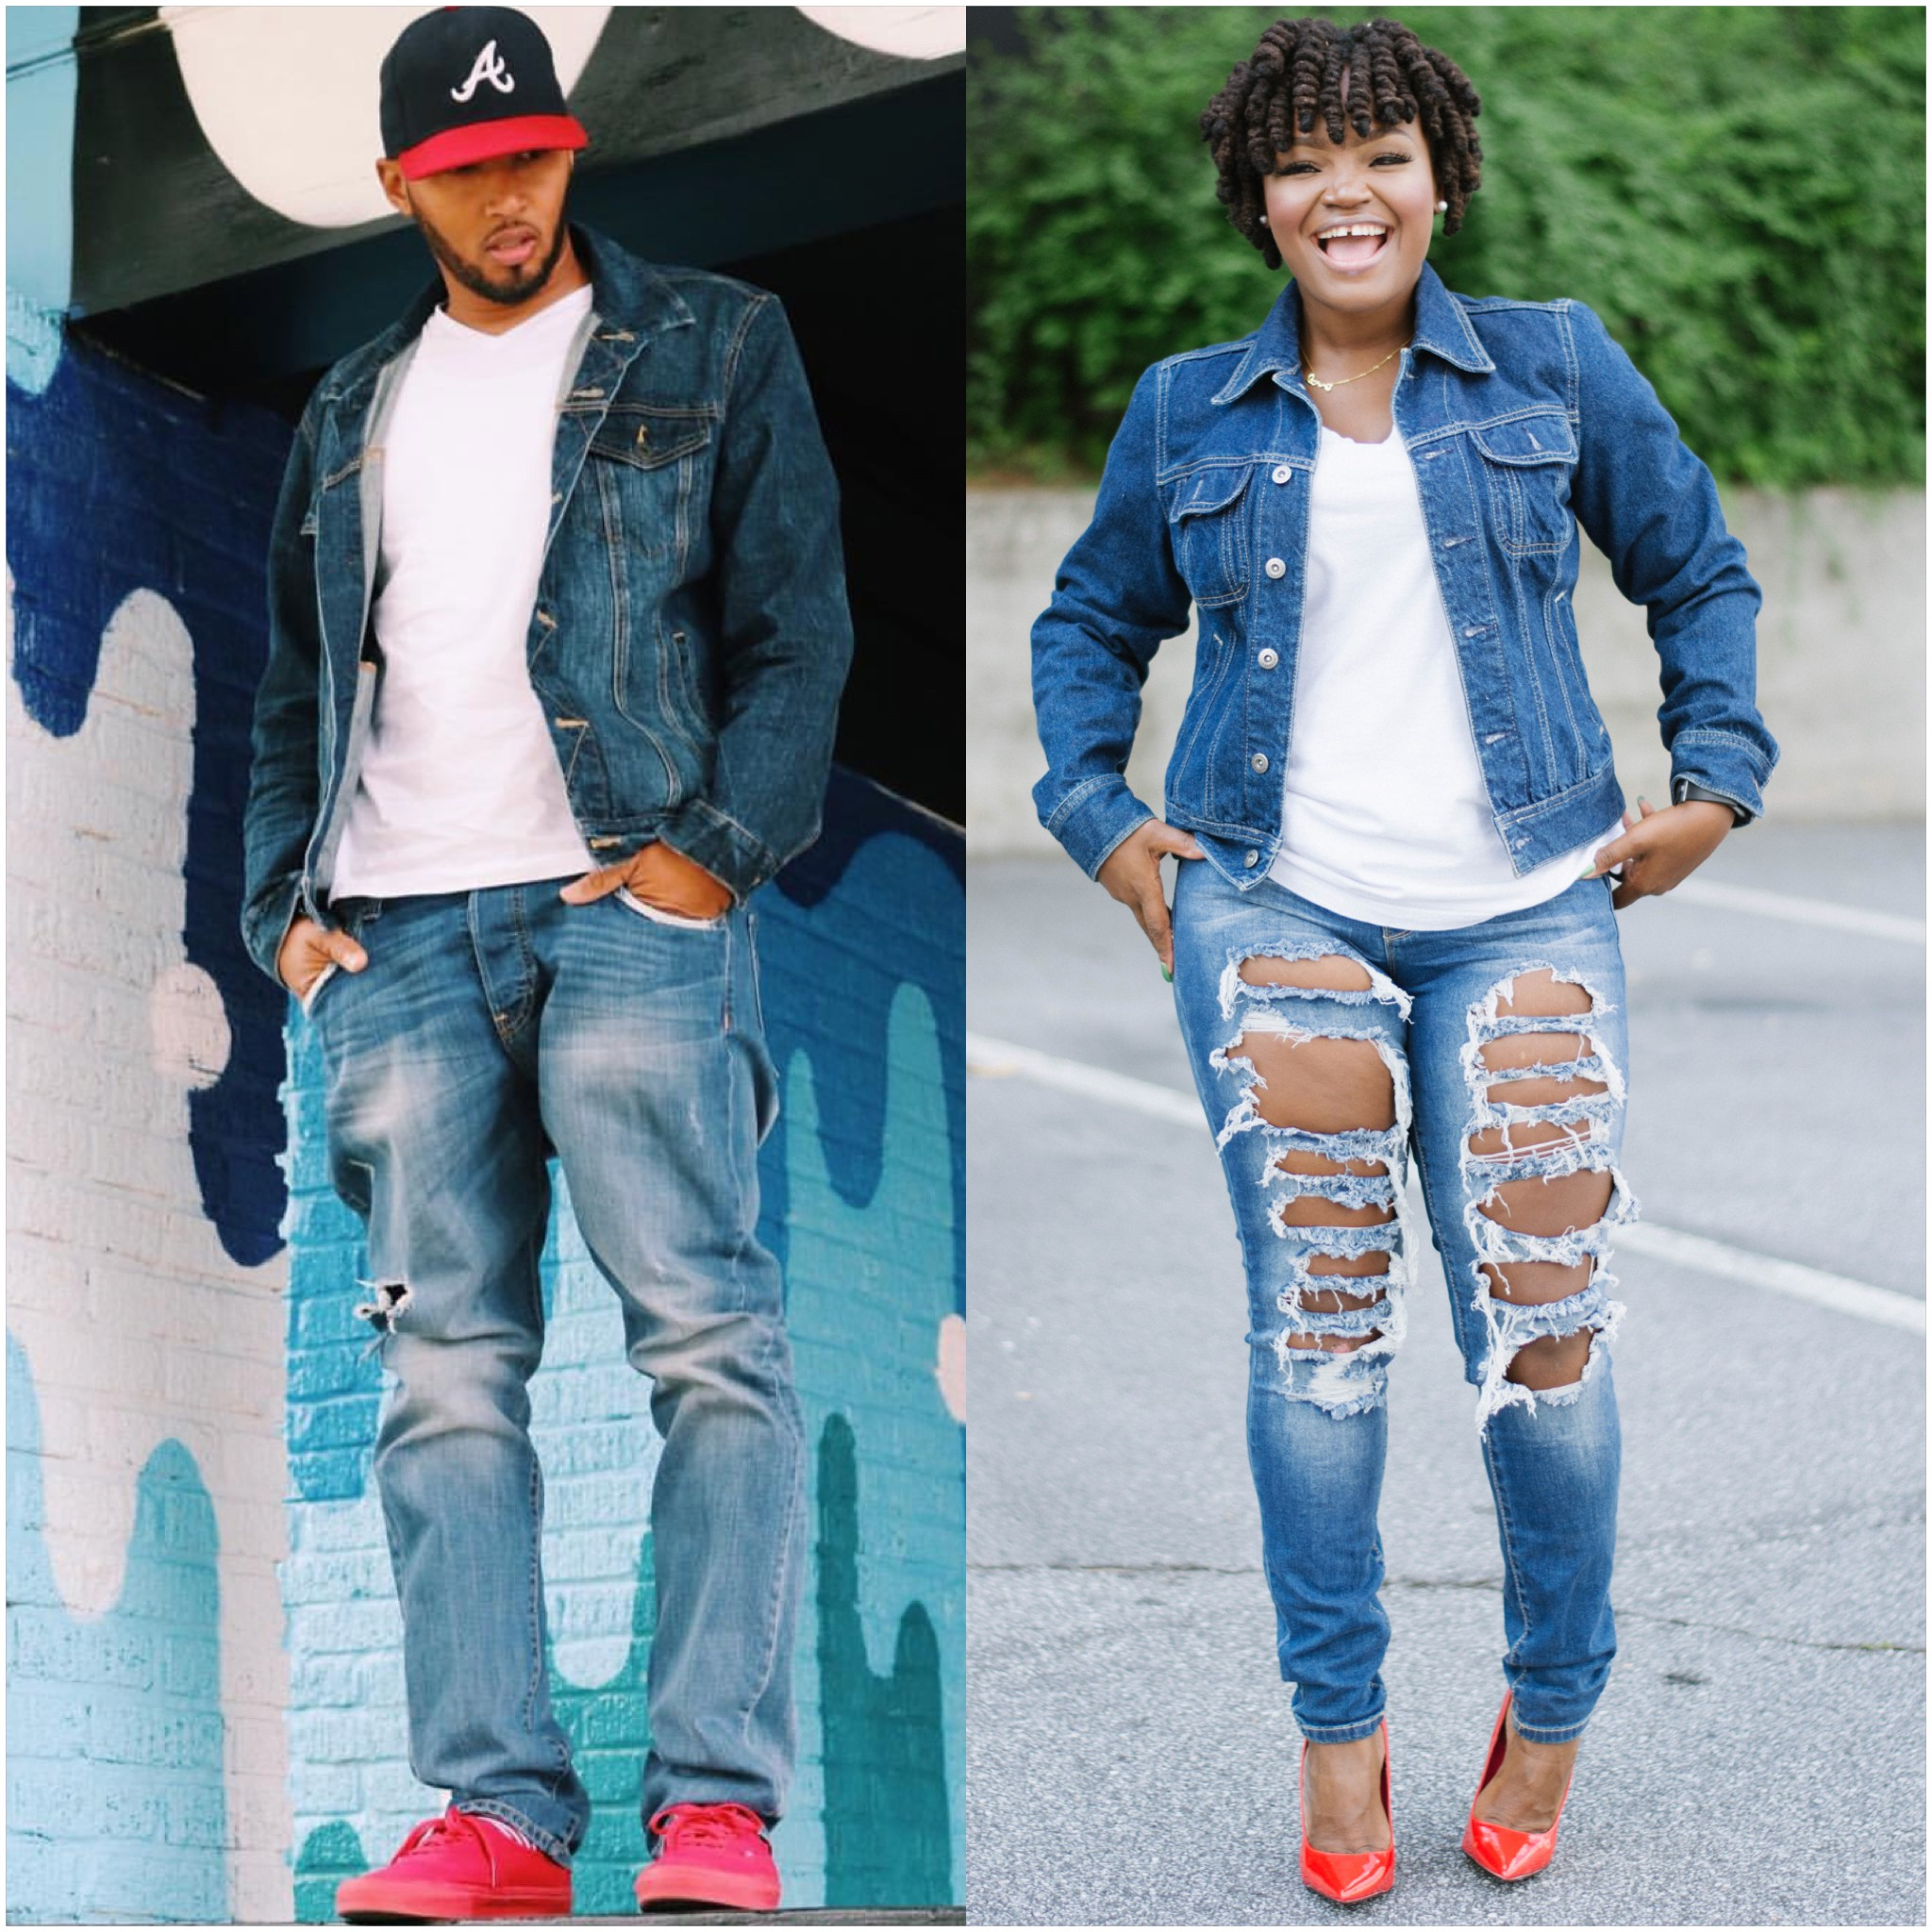 WHO WORE IT BEST: DENIM JACKET OVER WHITE TEE